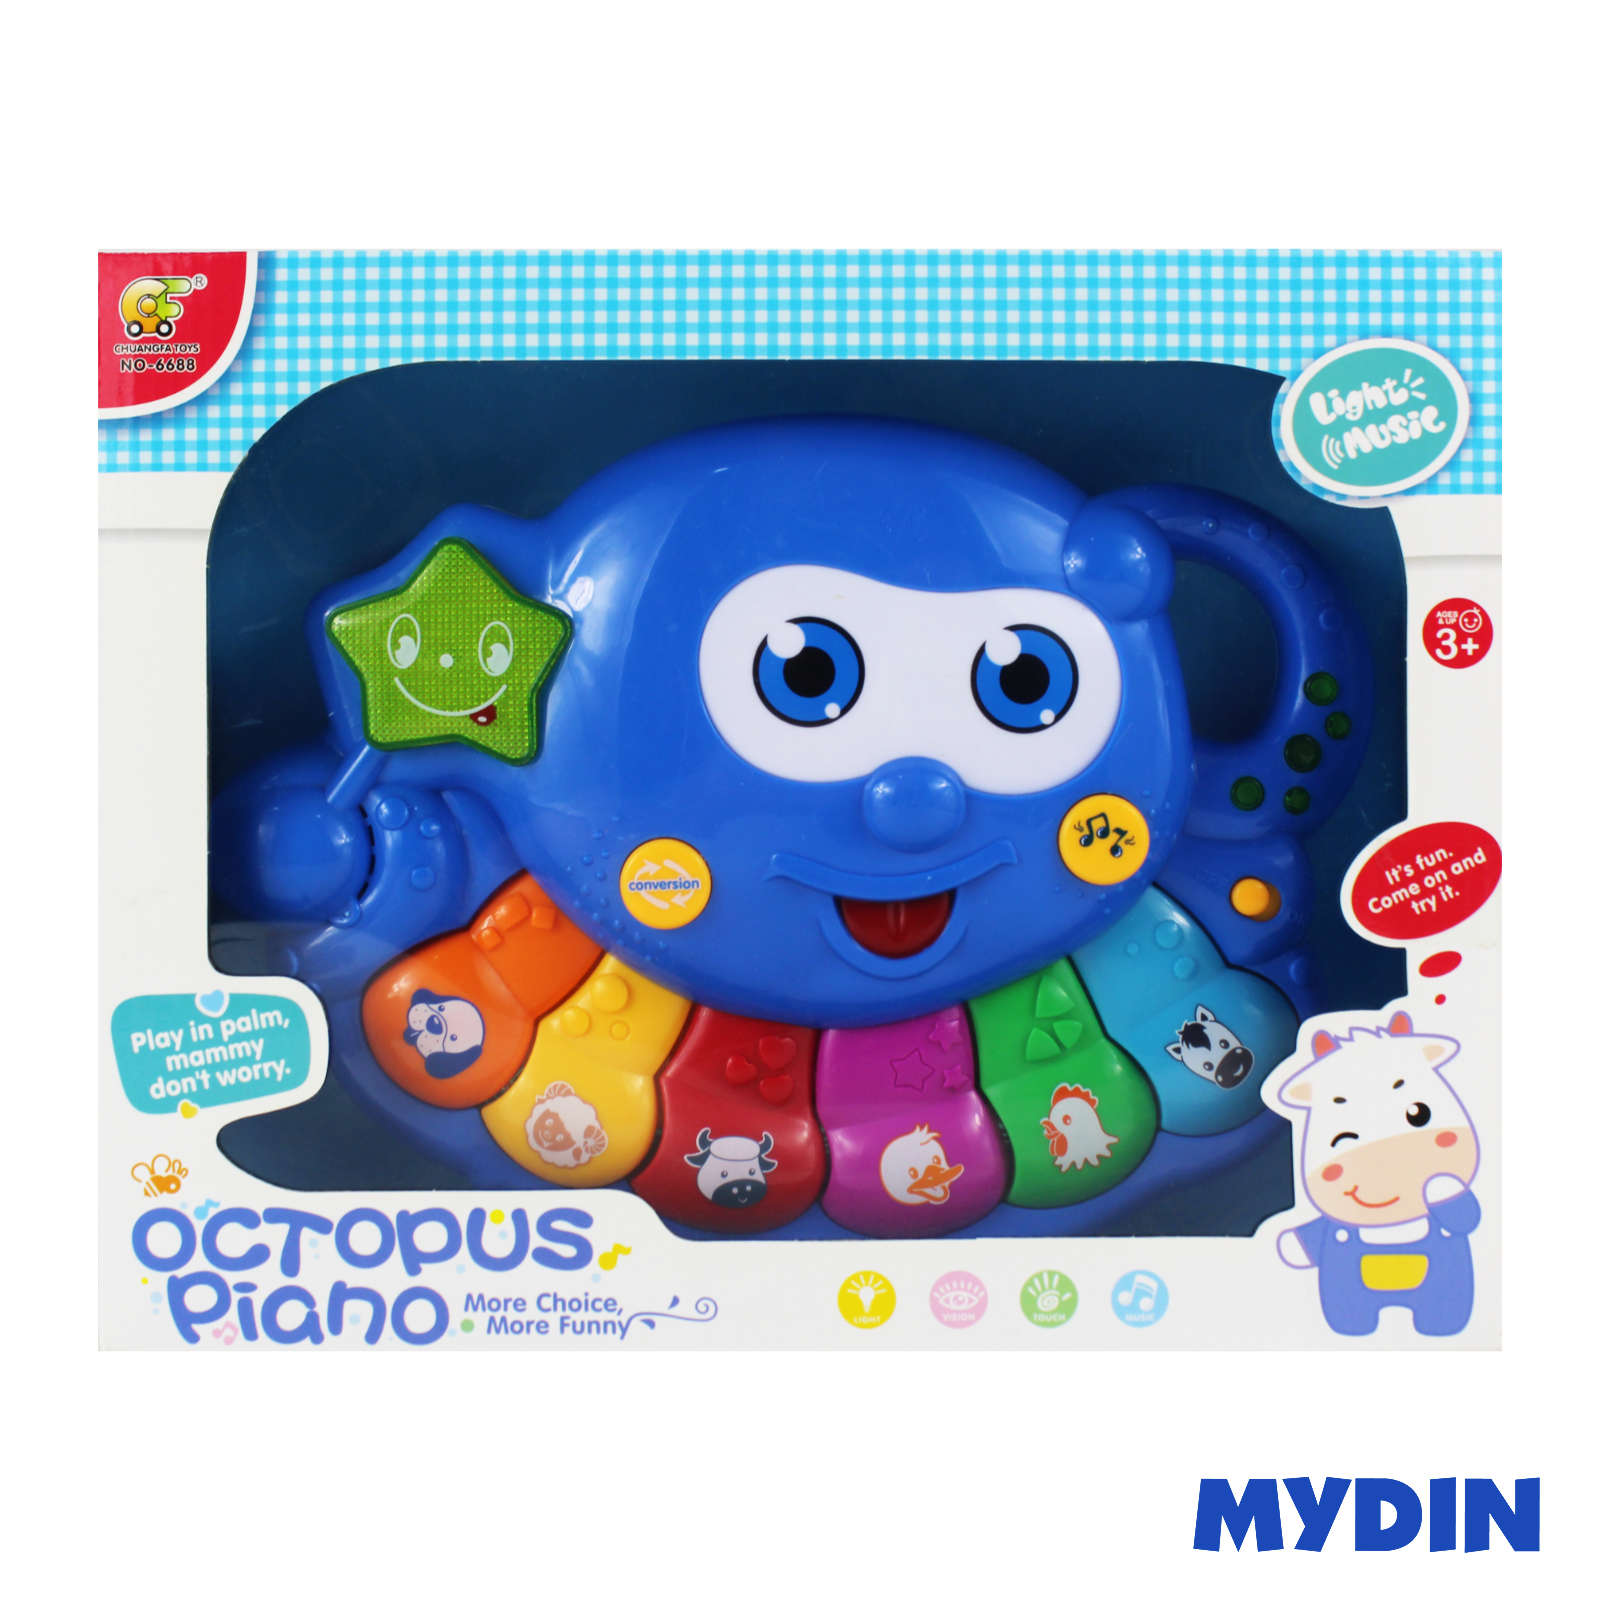 Octopus Colourful Piano 3 Years+ No-6688-2000